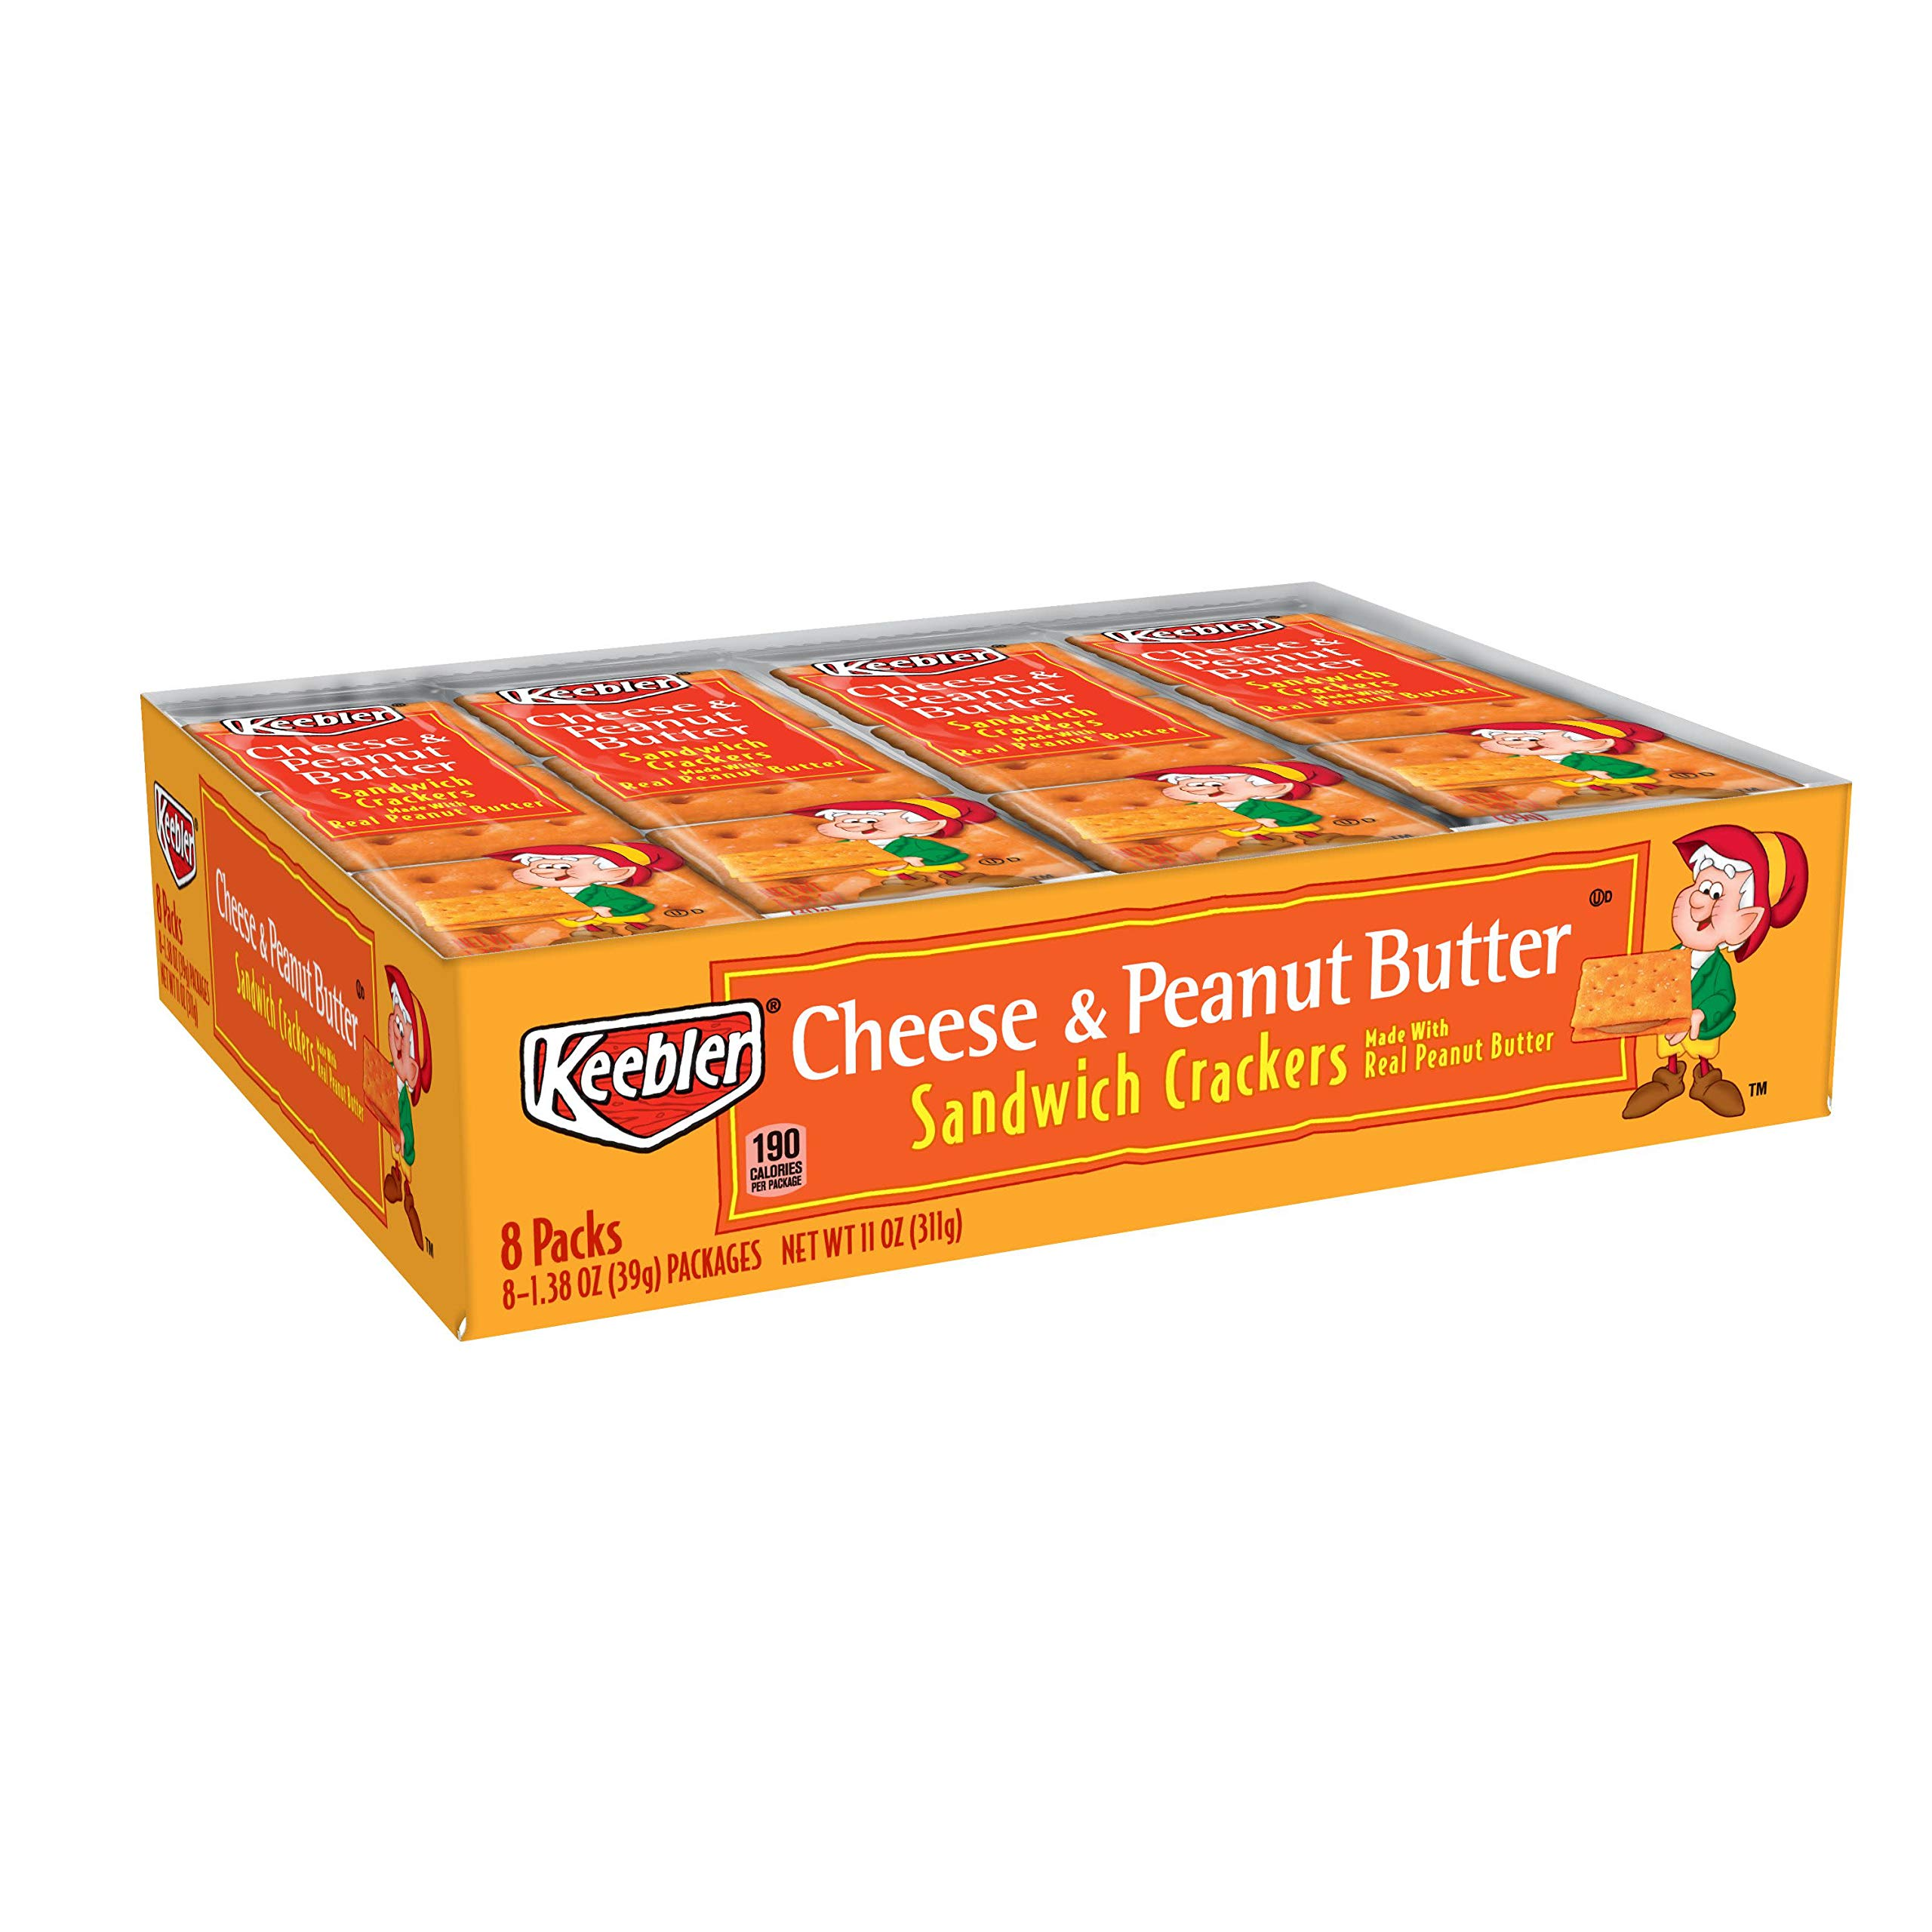 Keebler Cheese and Peanut Butter Sandwich Crackers, Single Serve, 1.38 oz Packages, 8 Count(Pack of 6)